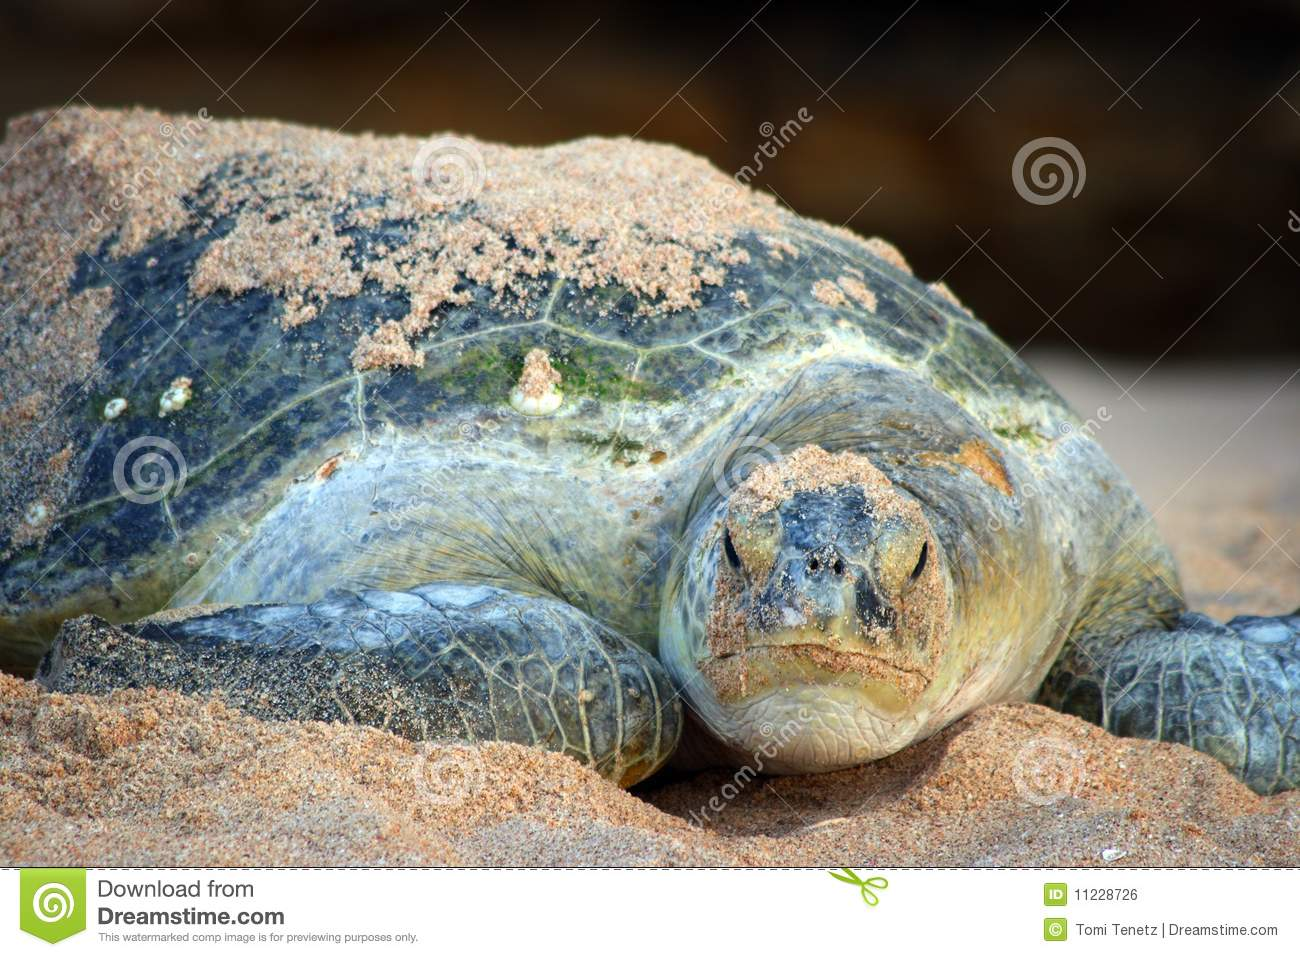 Oman: Green Turtle